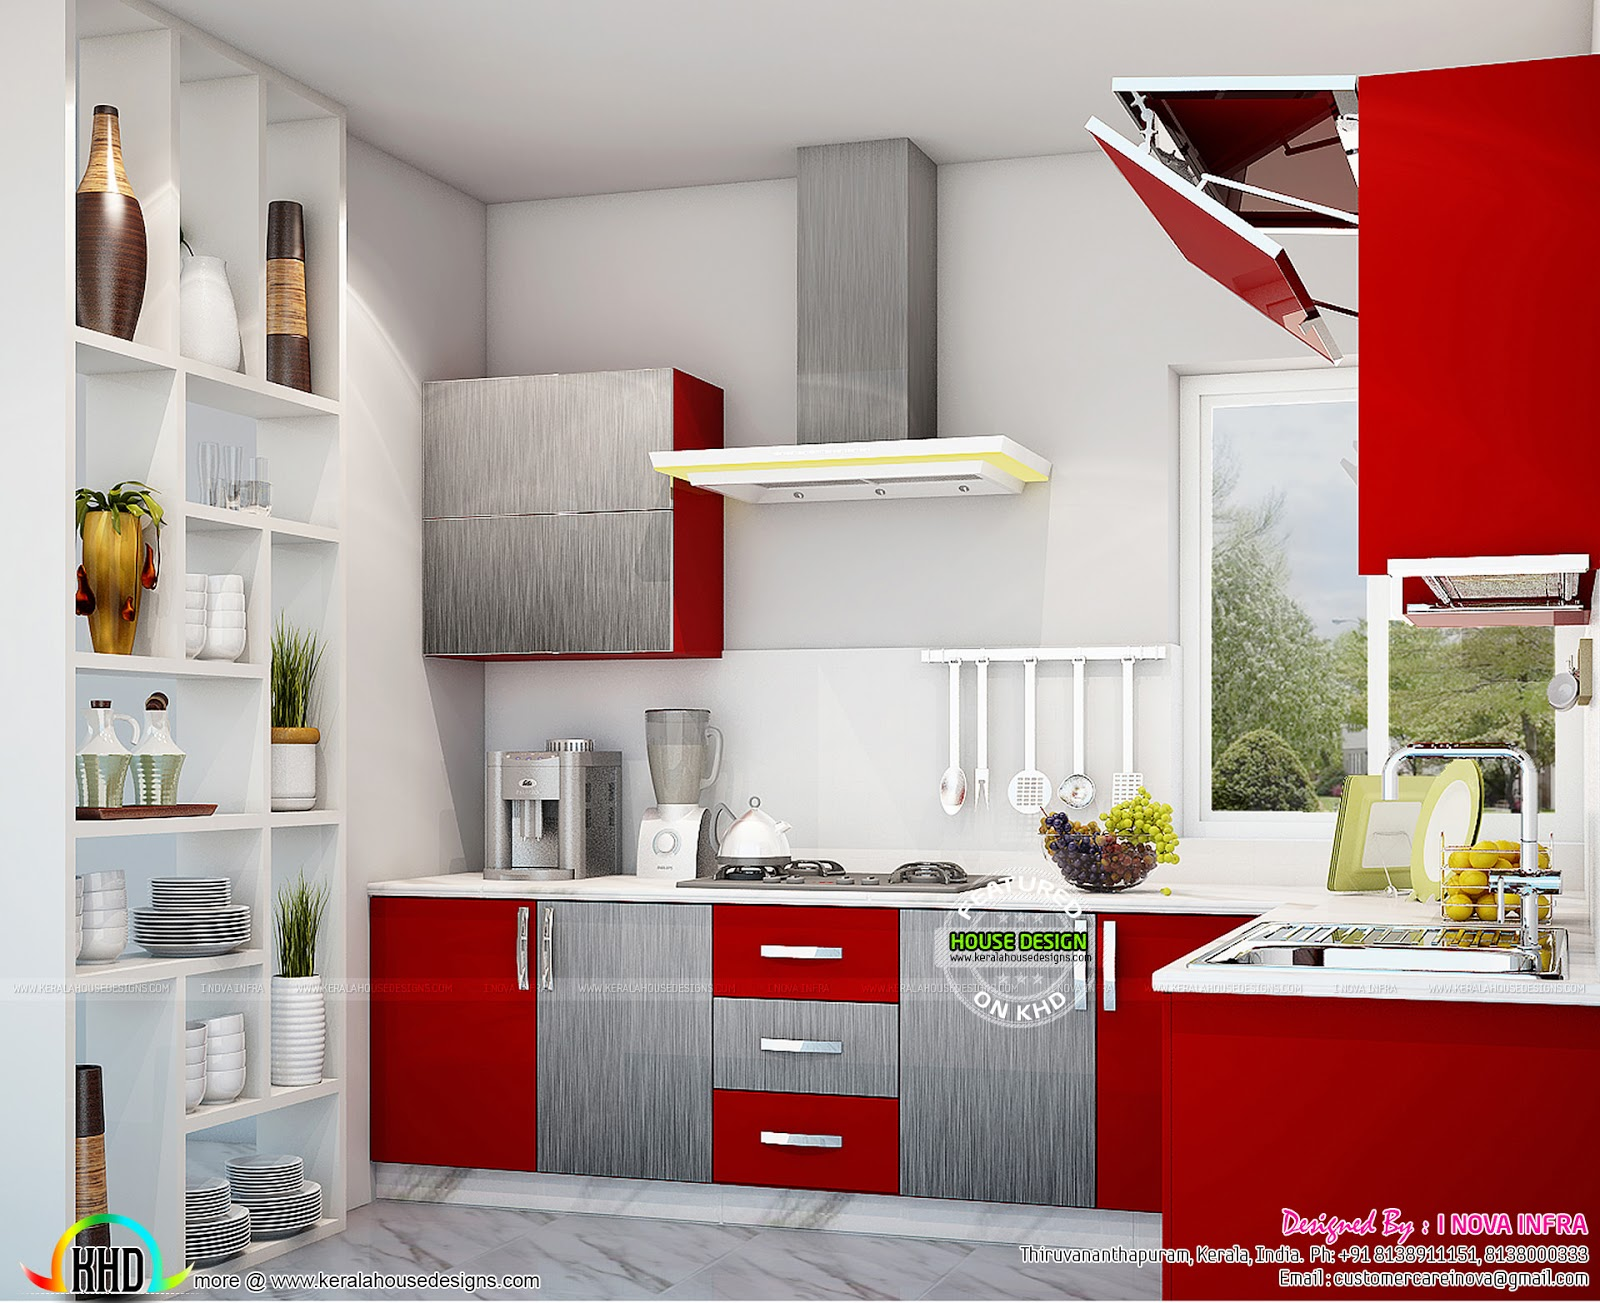 Kitchen Interior Works At Trivandrum Kerala Home Design And Floor Plans